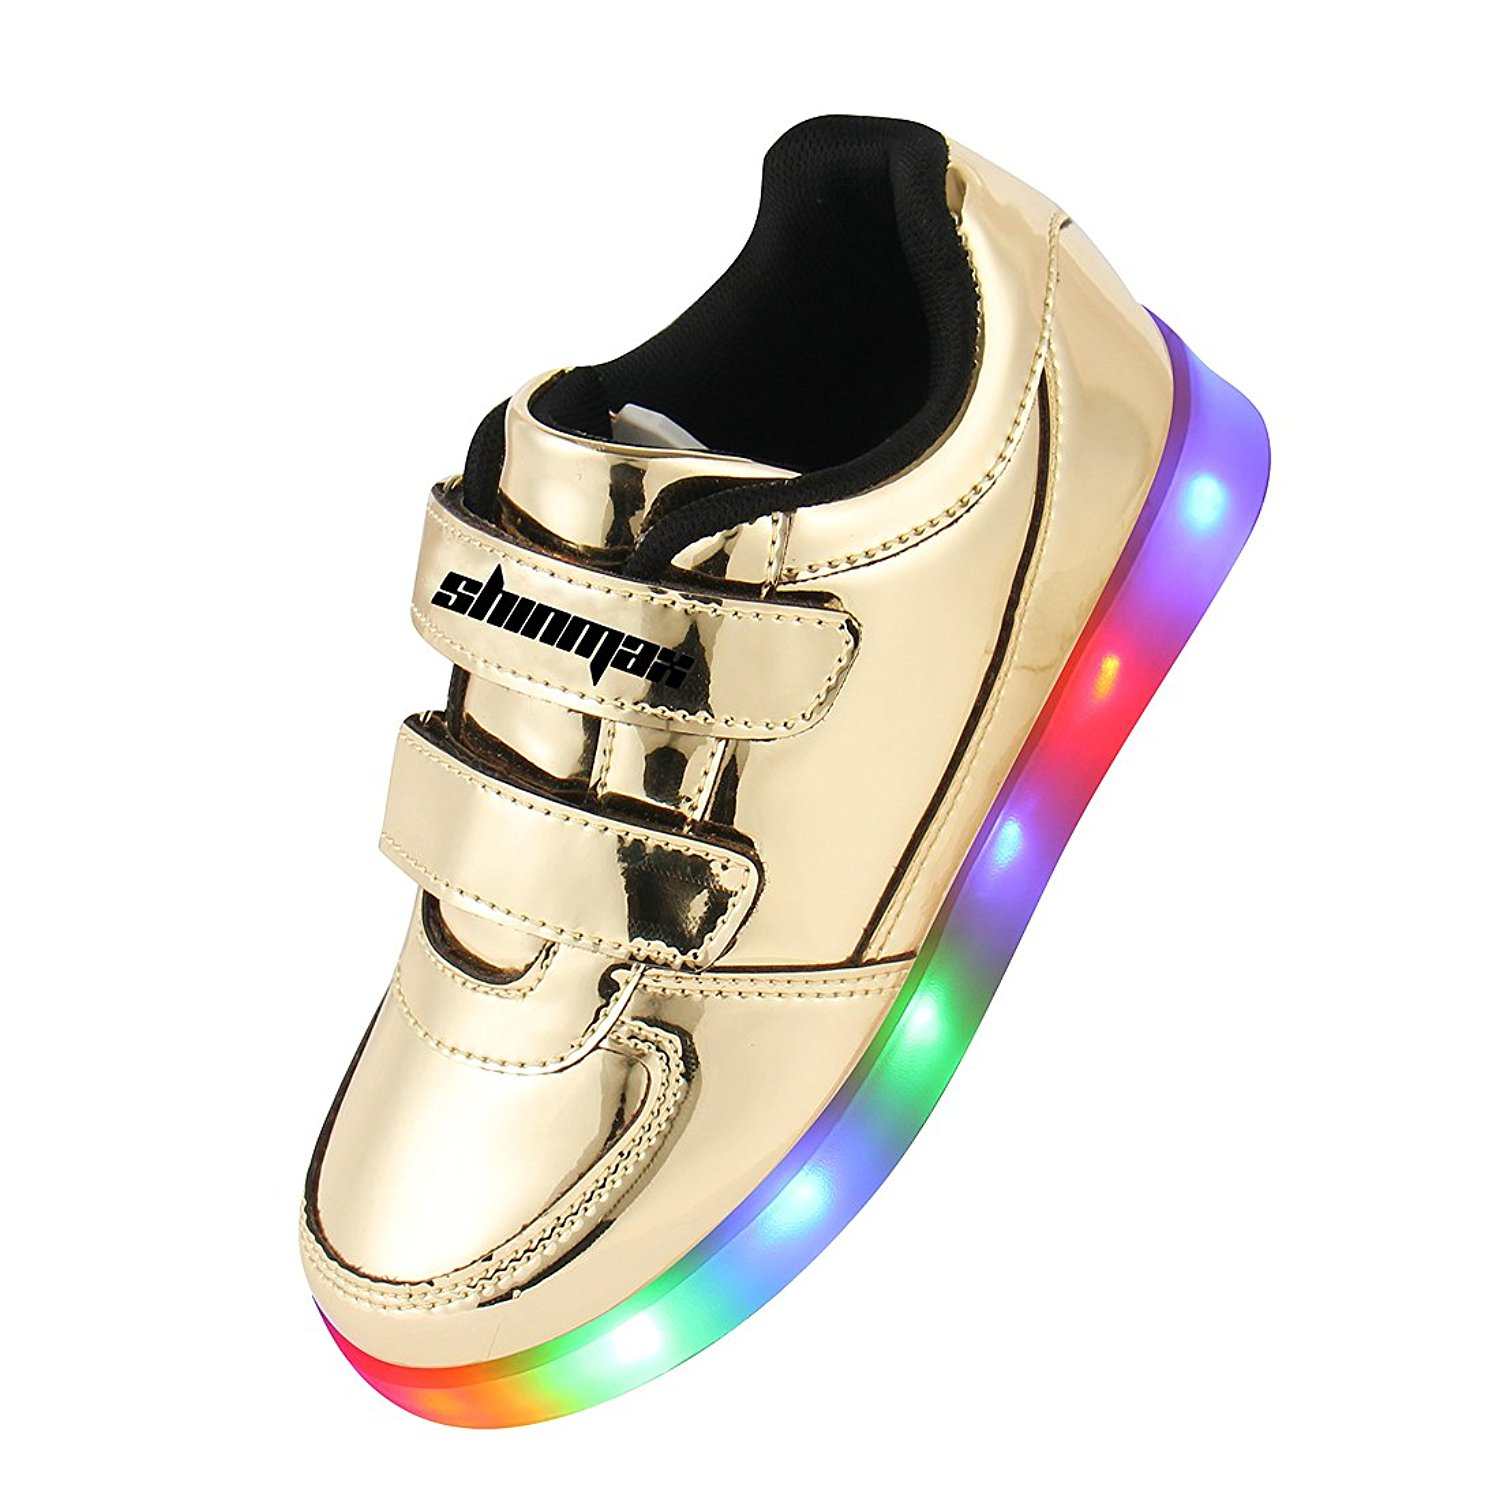 88488d800b436a Shinmax Golden Kindheit-Serie LED Schuhe Multi Color USB-Lade Kid ...